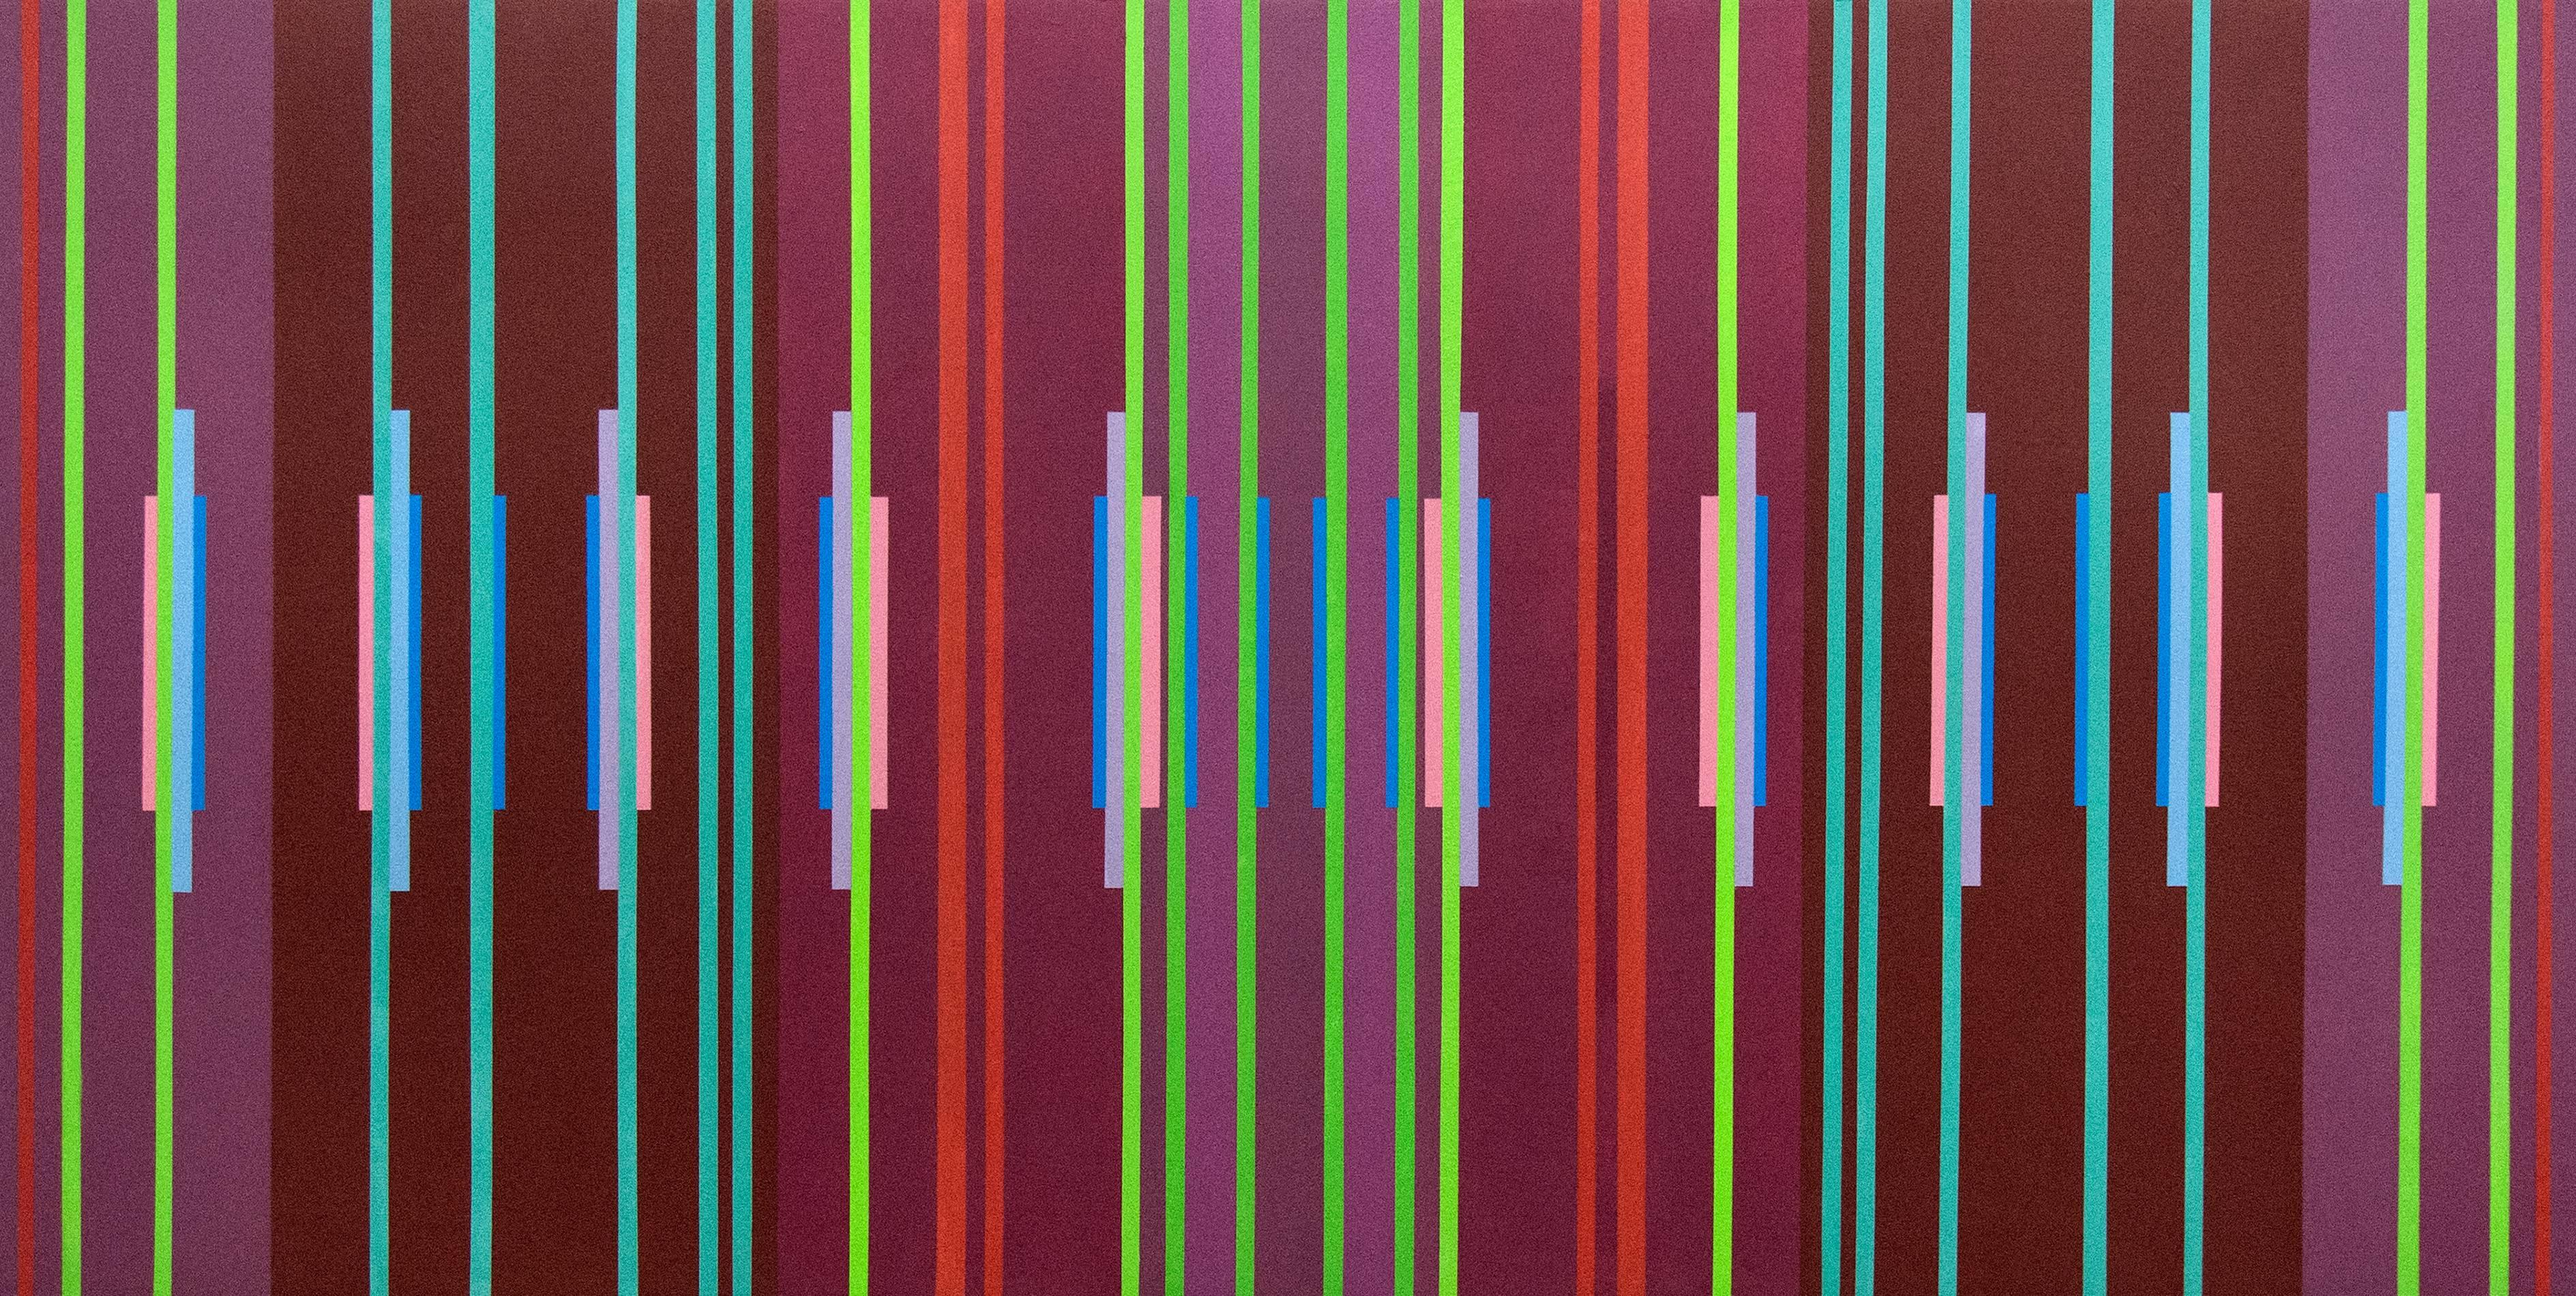 Fugue #2 - vivid, colourful, geometric abstraction, modernist, acrylic on panel